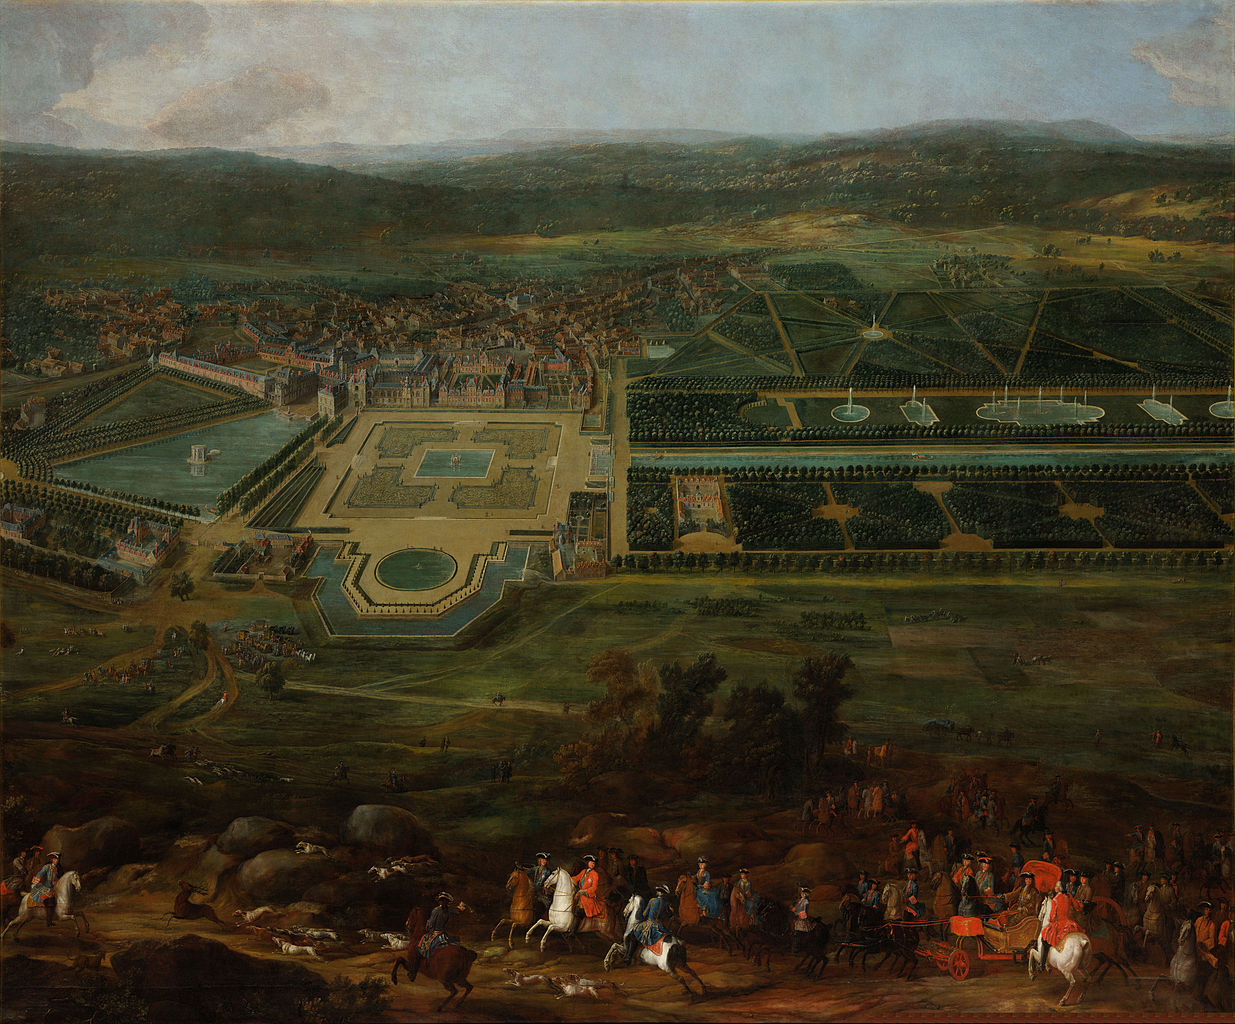 Pierre-Denis Martin, Vue du Château de Fontainbleau (1718-1723). Click for source and higher resolution image.